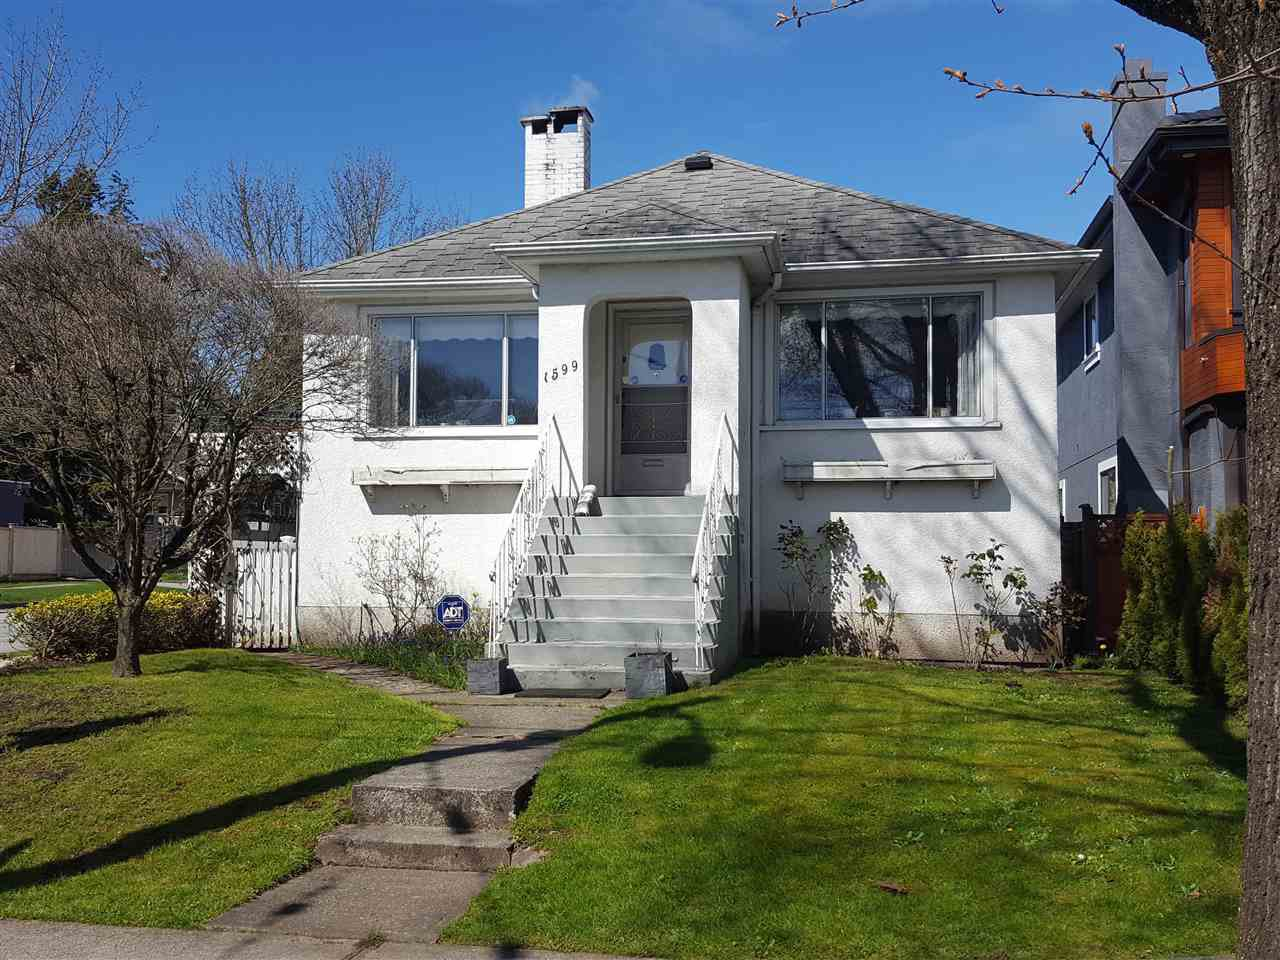 Photo 14: Photos: 1599 W 63RD Avenue in Vancouver: South Granville House for sale (Vancouver West)  : MLS®# R2157245